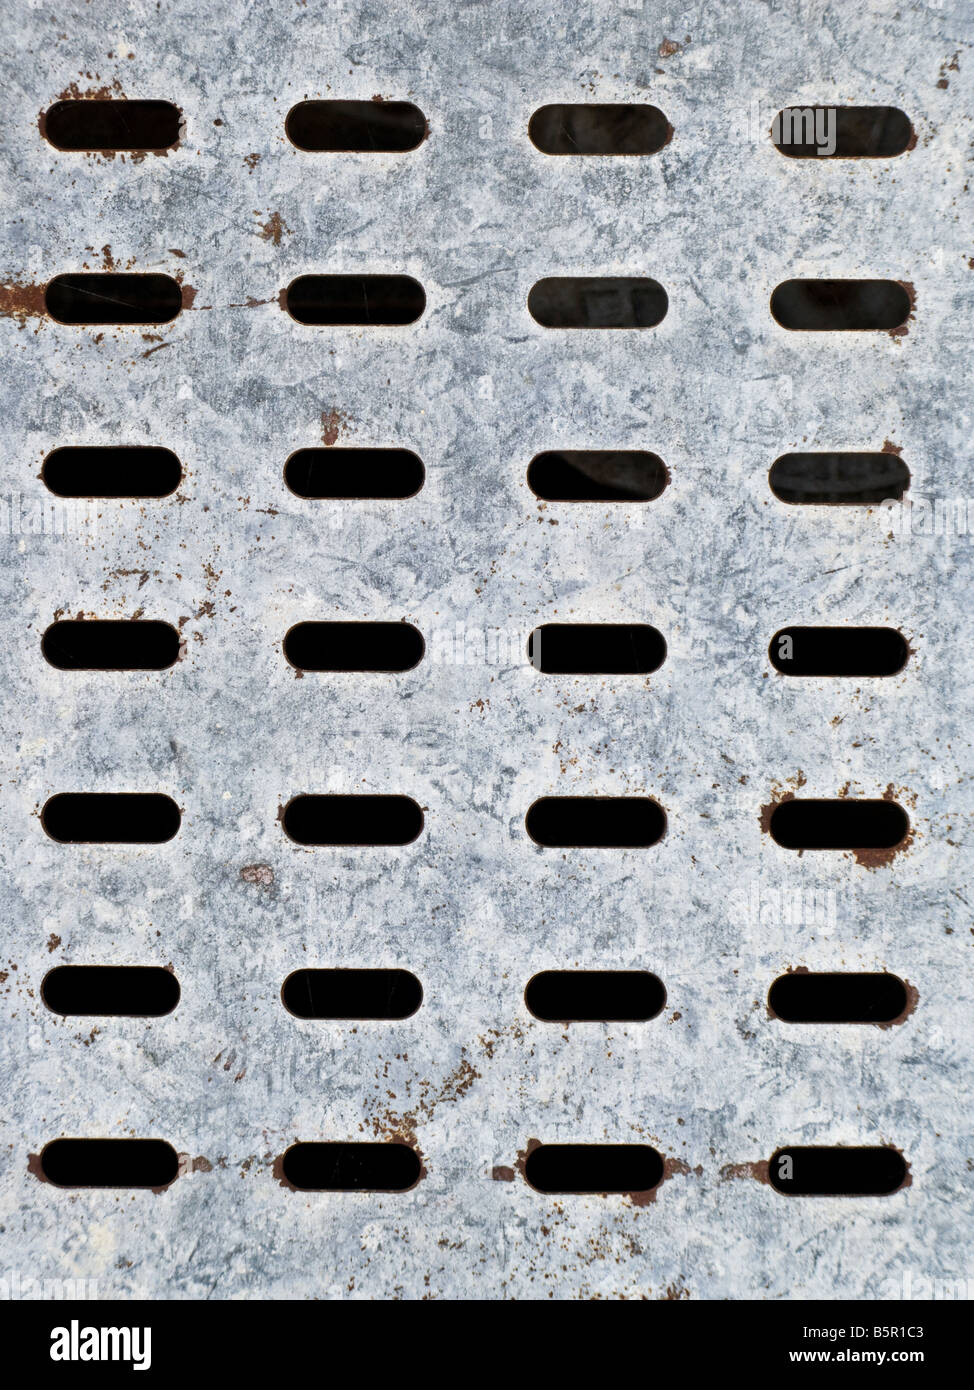 Perforated galvanized plated metal surface. Abstract background texture. - Stock Image